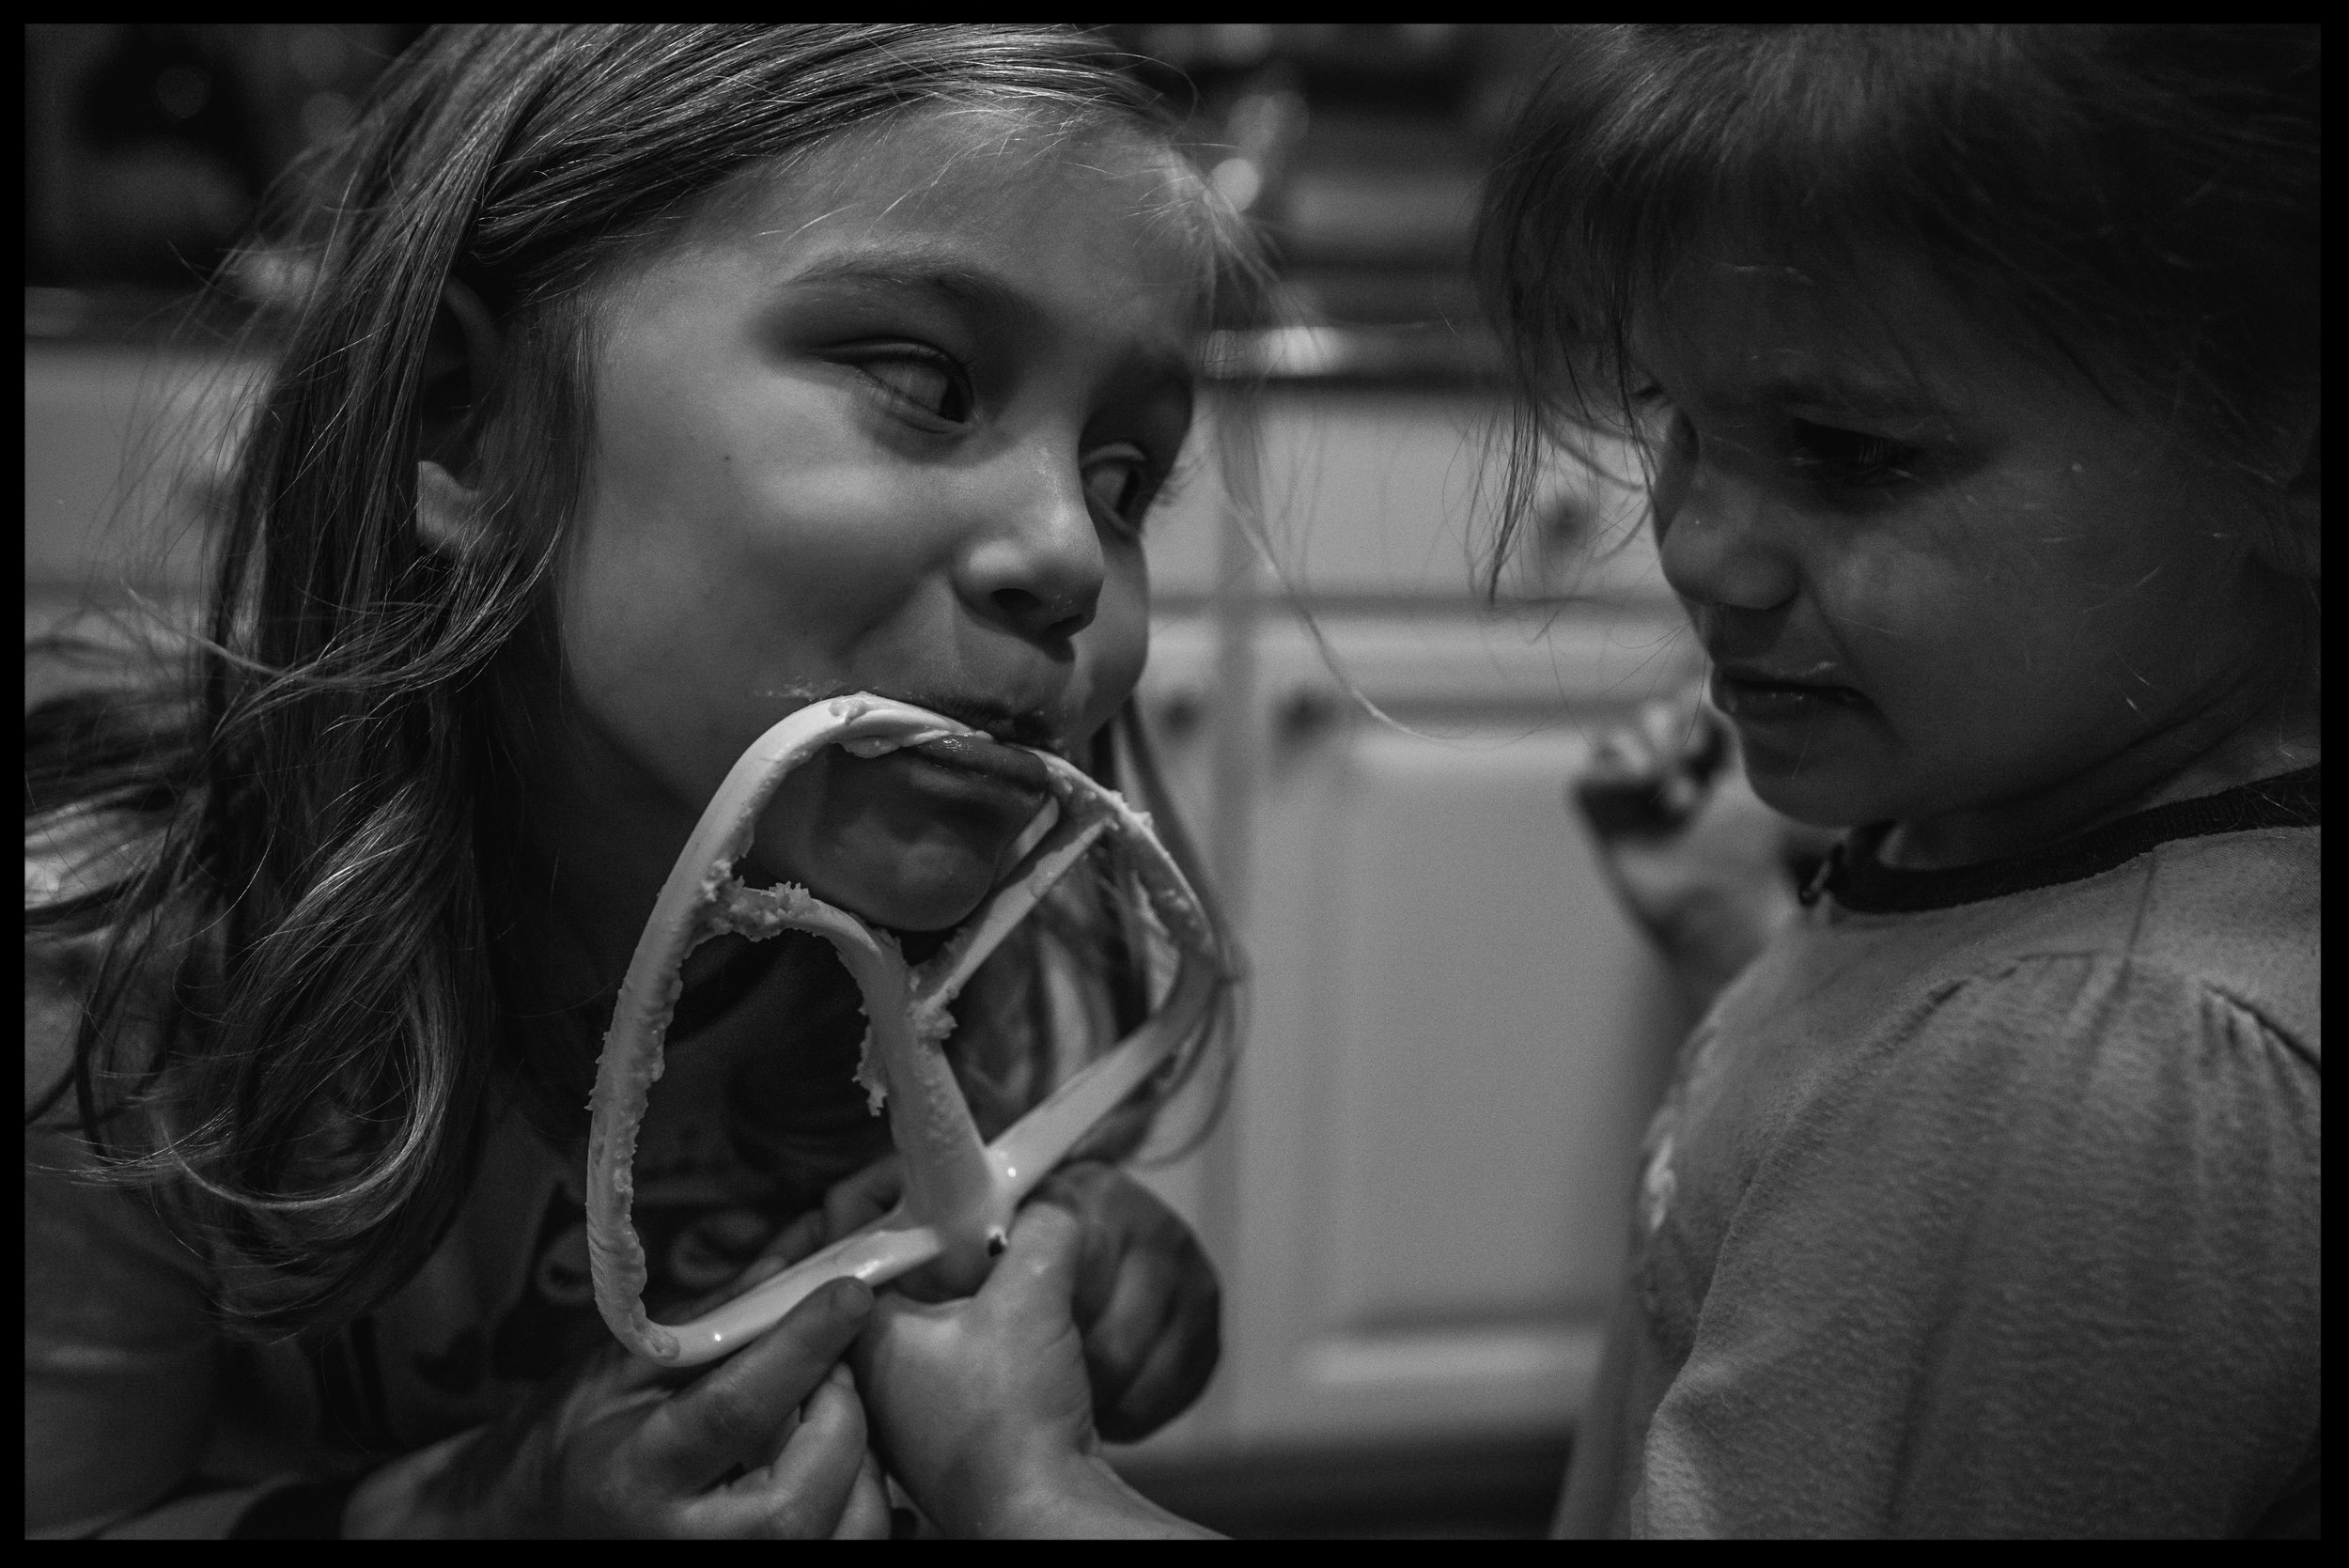 Sisters taking turns licking the beater, black and white